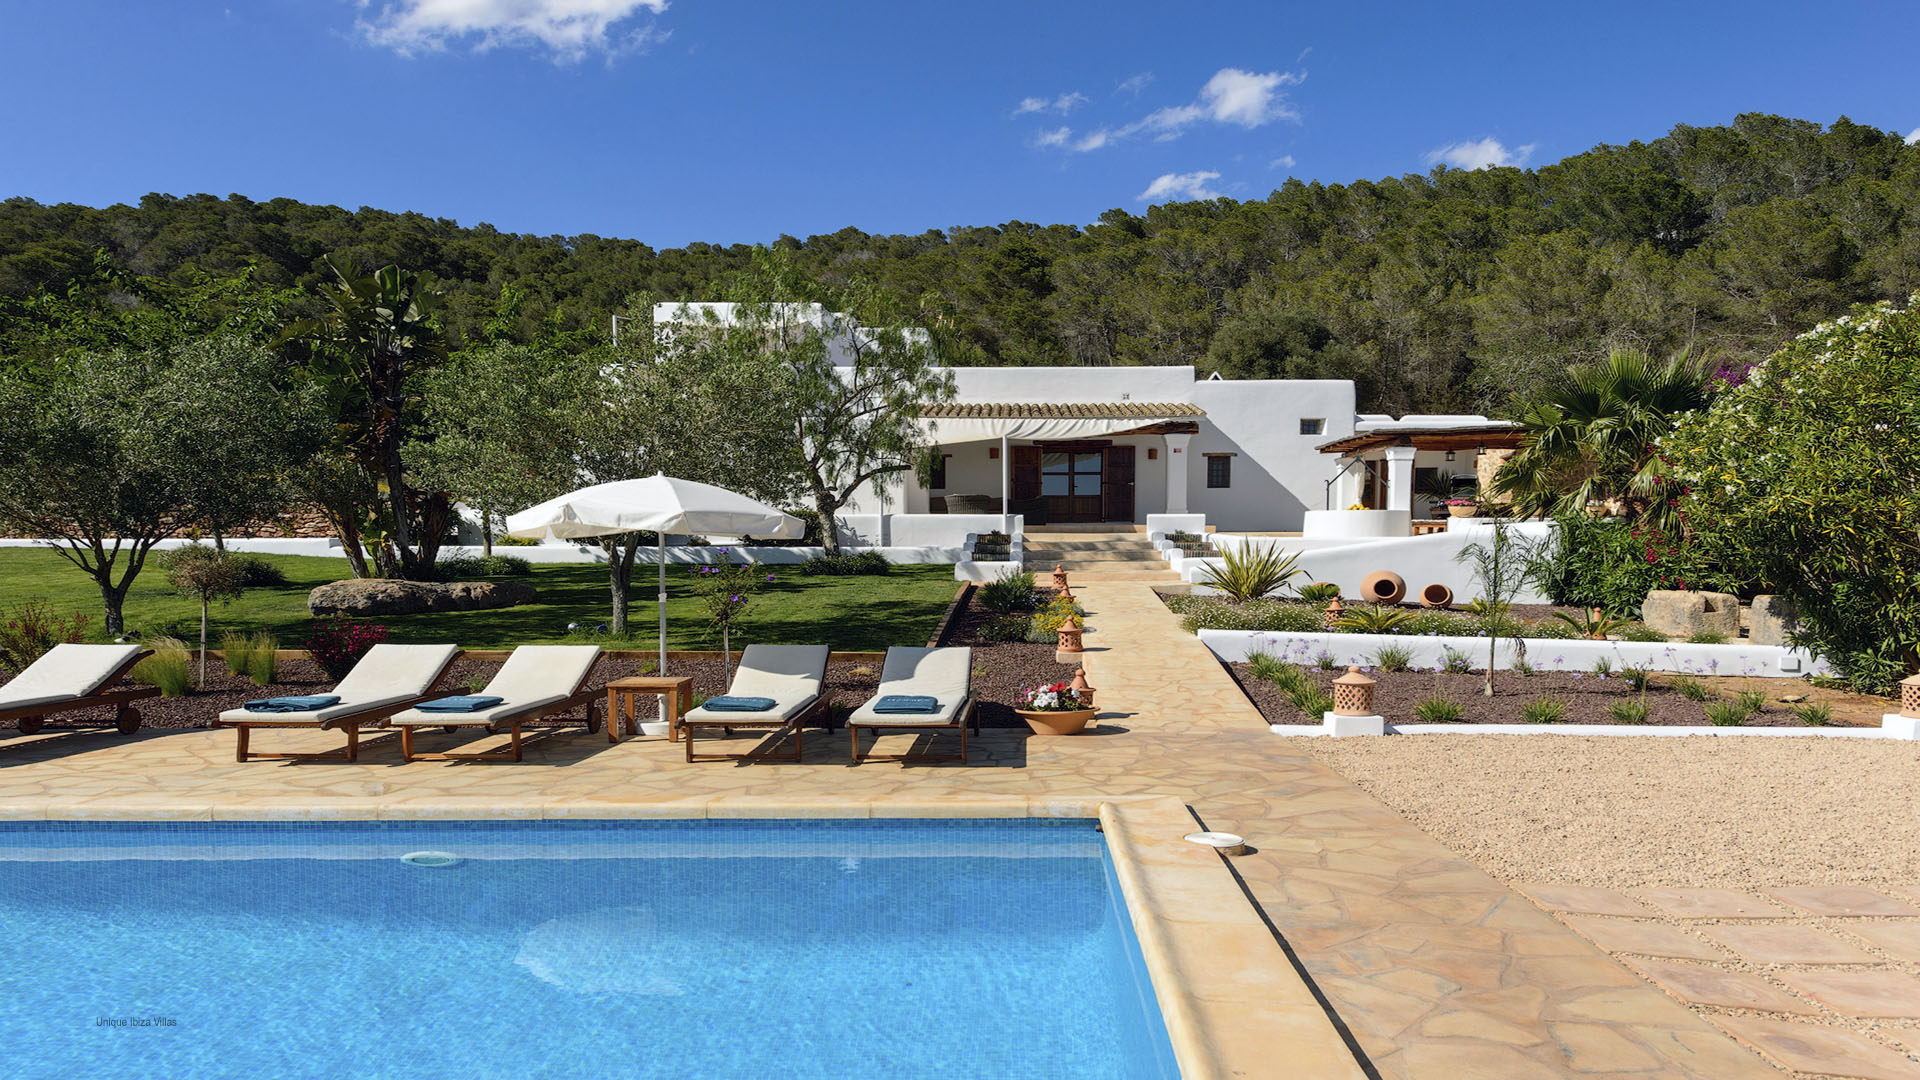 FINCA MAGO - (sleeps 9 - private pool villa - Santa Eulalia - 5 bedrooms)